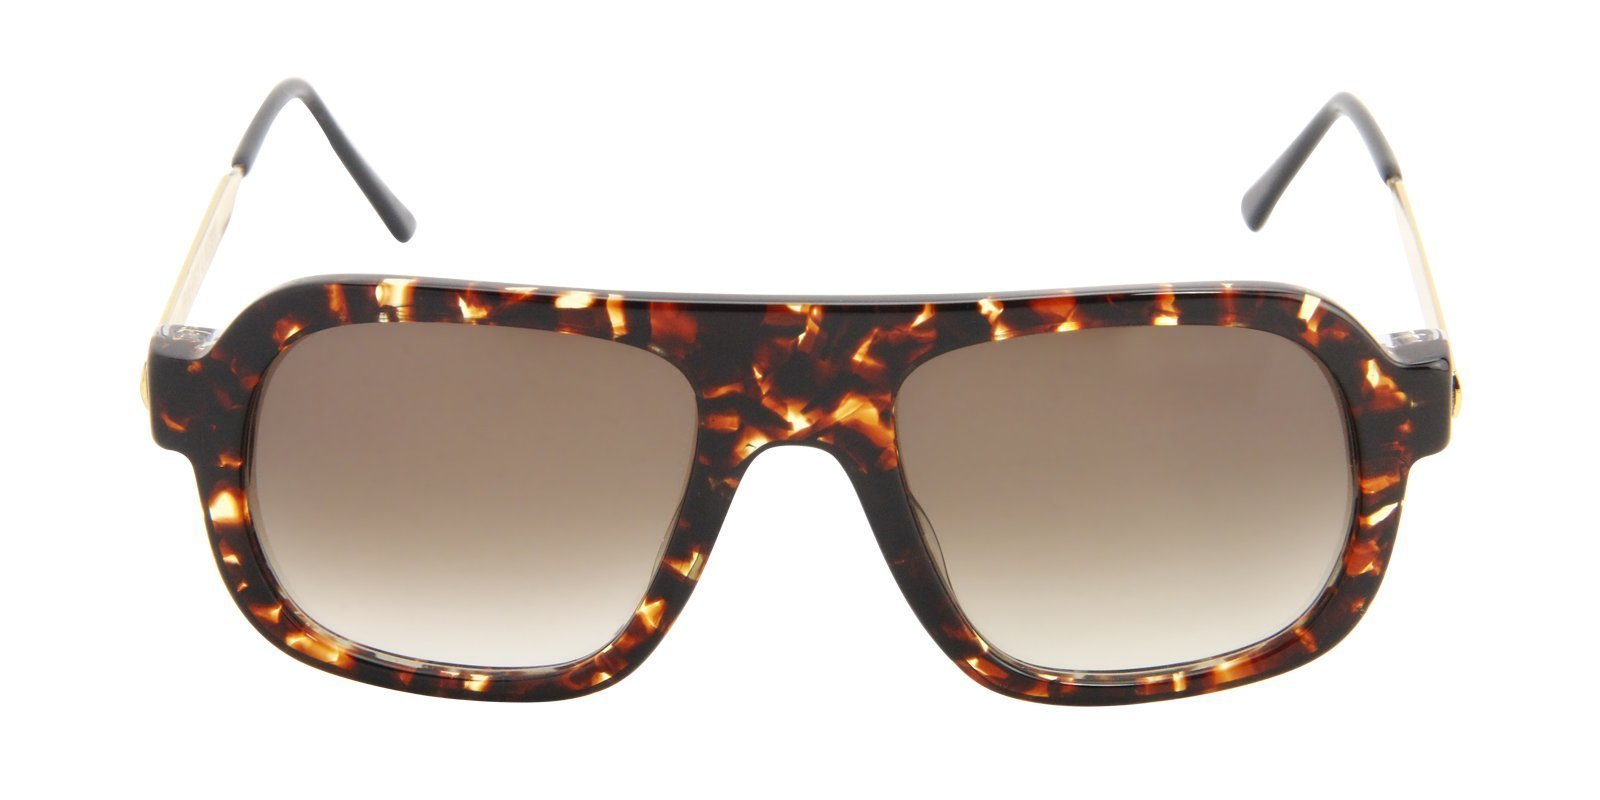 Thierry Lasry - Kurupty Tortoise Rectangular Men, Women Sunglasses - 52mm-Sunglasses-Designer Eyes